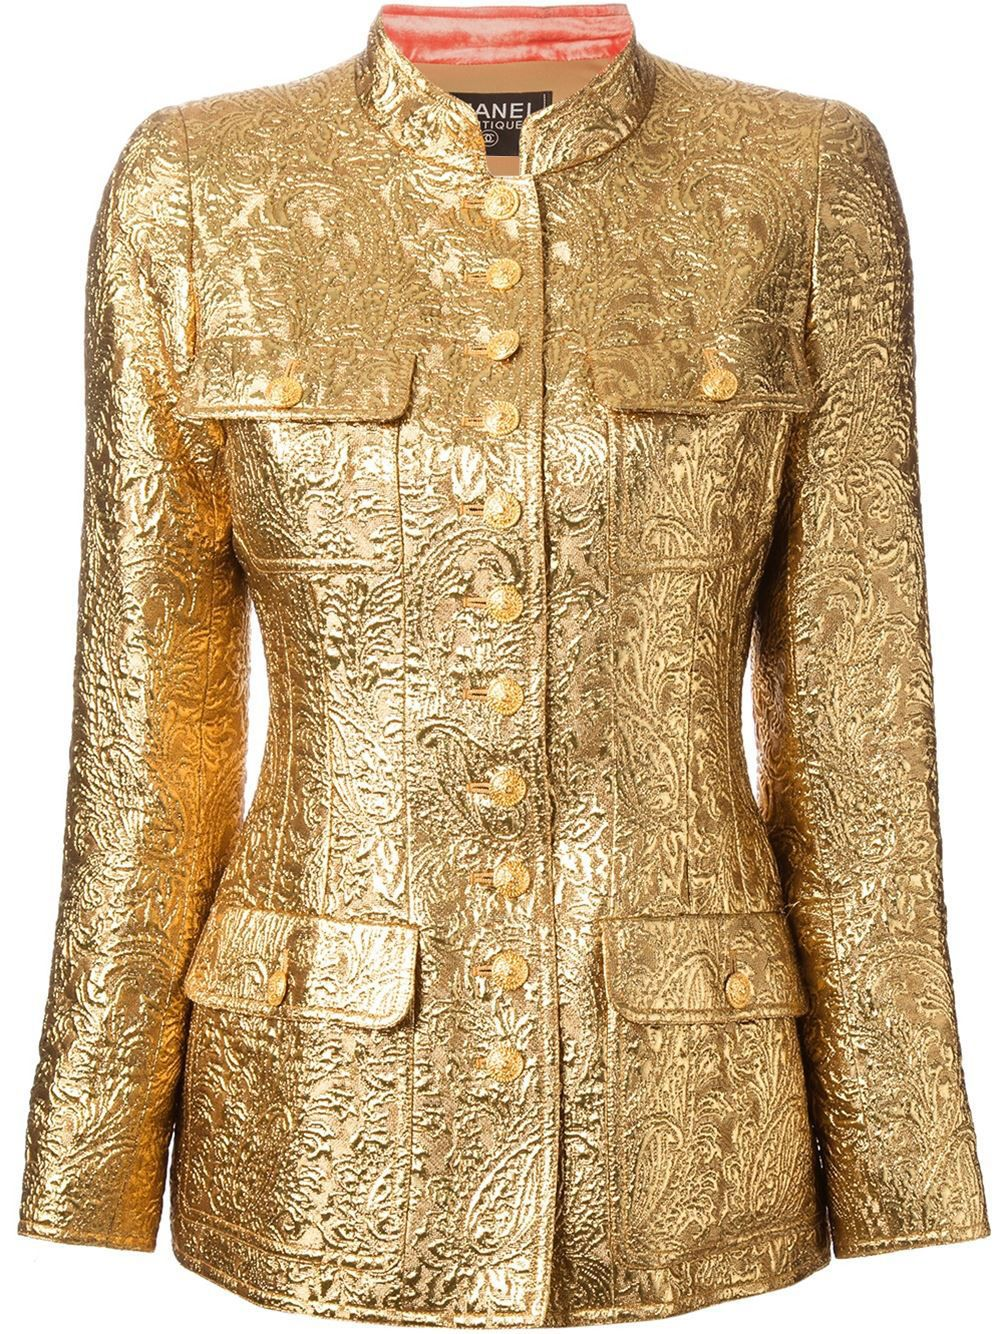 1ea0379a95df4a Chanel 24K Gold Jacket 96A Met Museum Lesage Embroidered Vogue Meisel Gaga  $10K | @THECOVETEUR #THECOVETEUR